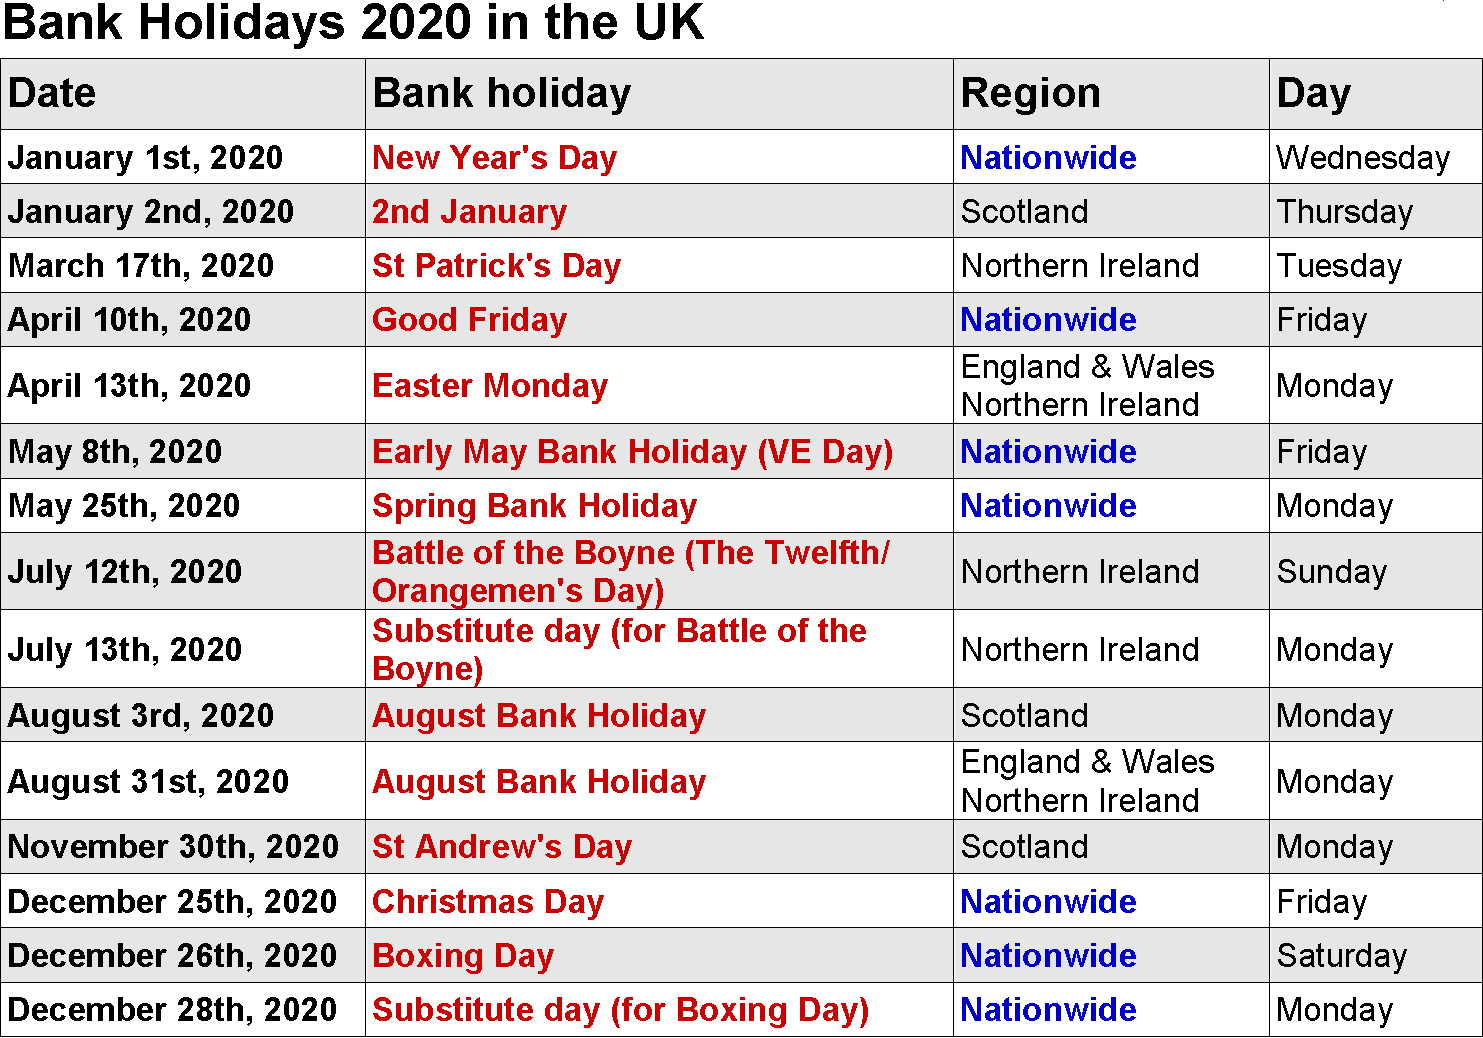 UK Bank Holidays 2020